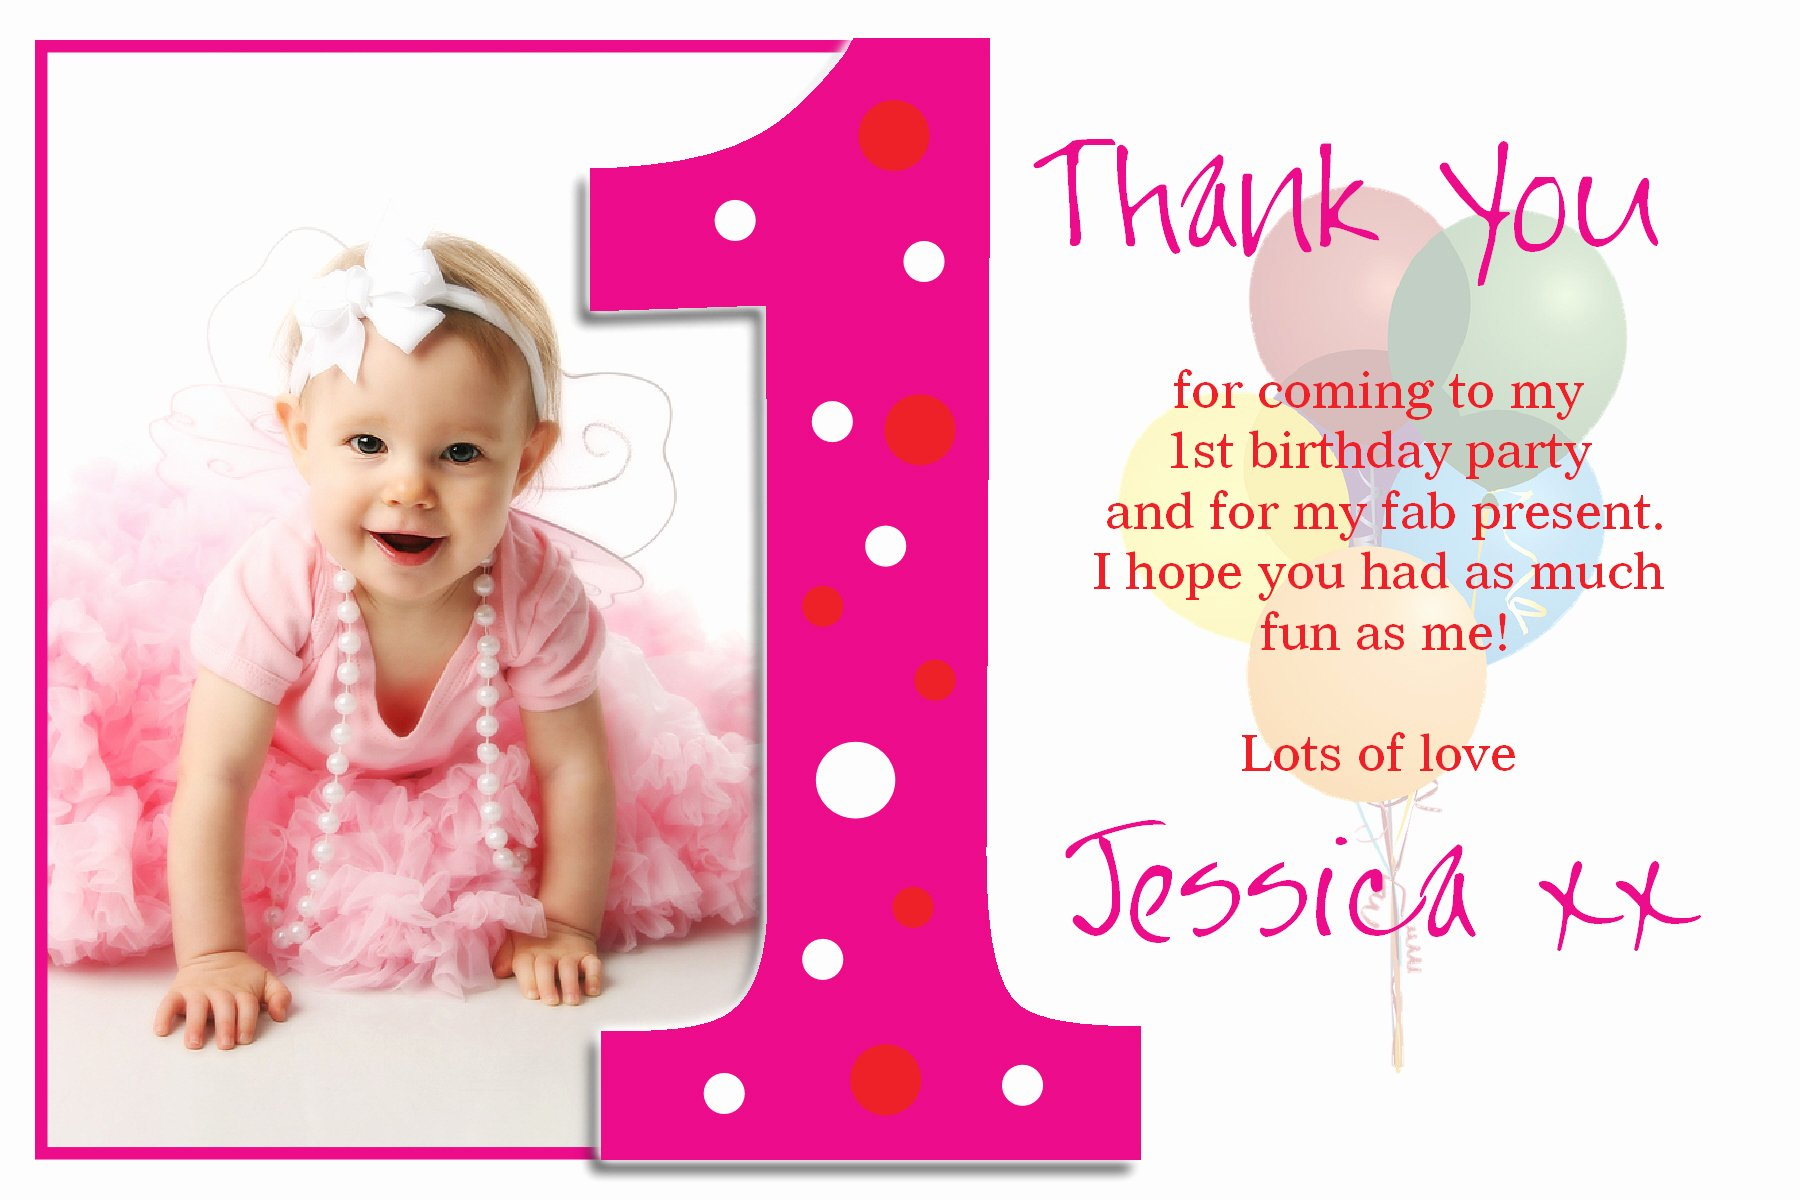 1st Birthday Thank You Cards Awesome 1st Birthday Quotes for Cards Quotesgram